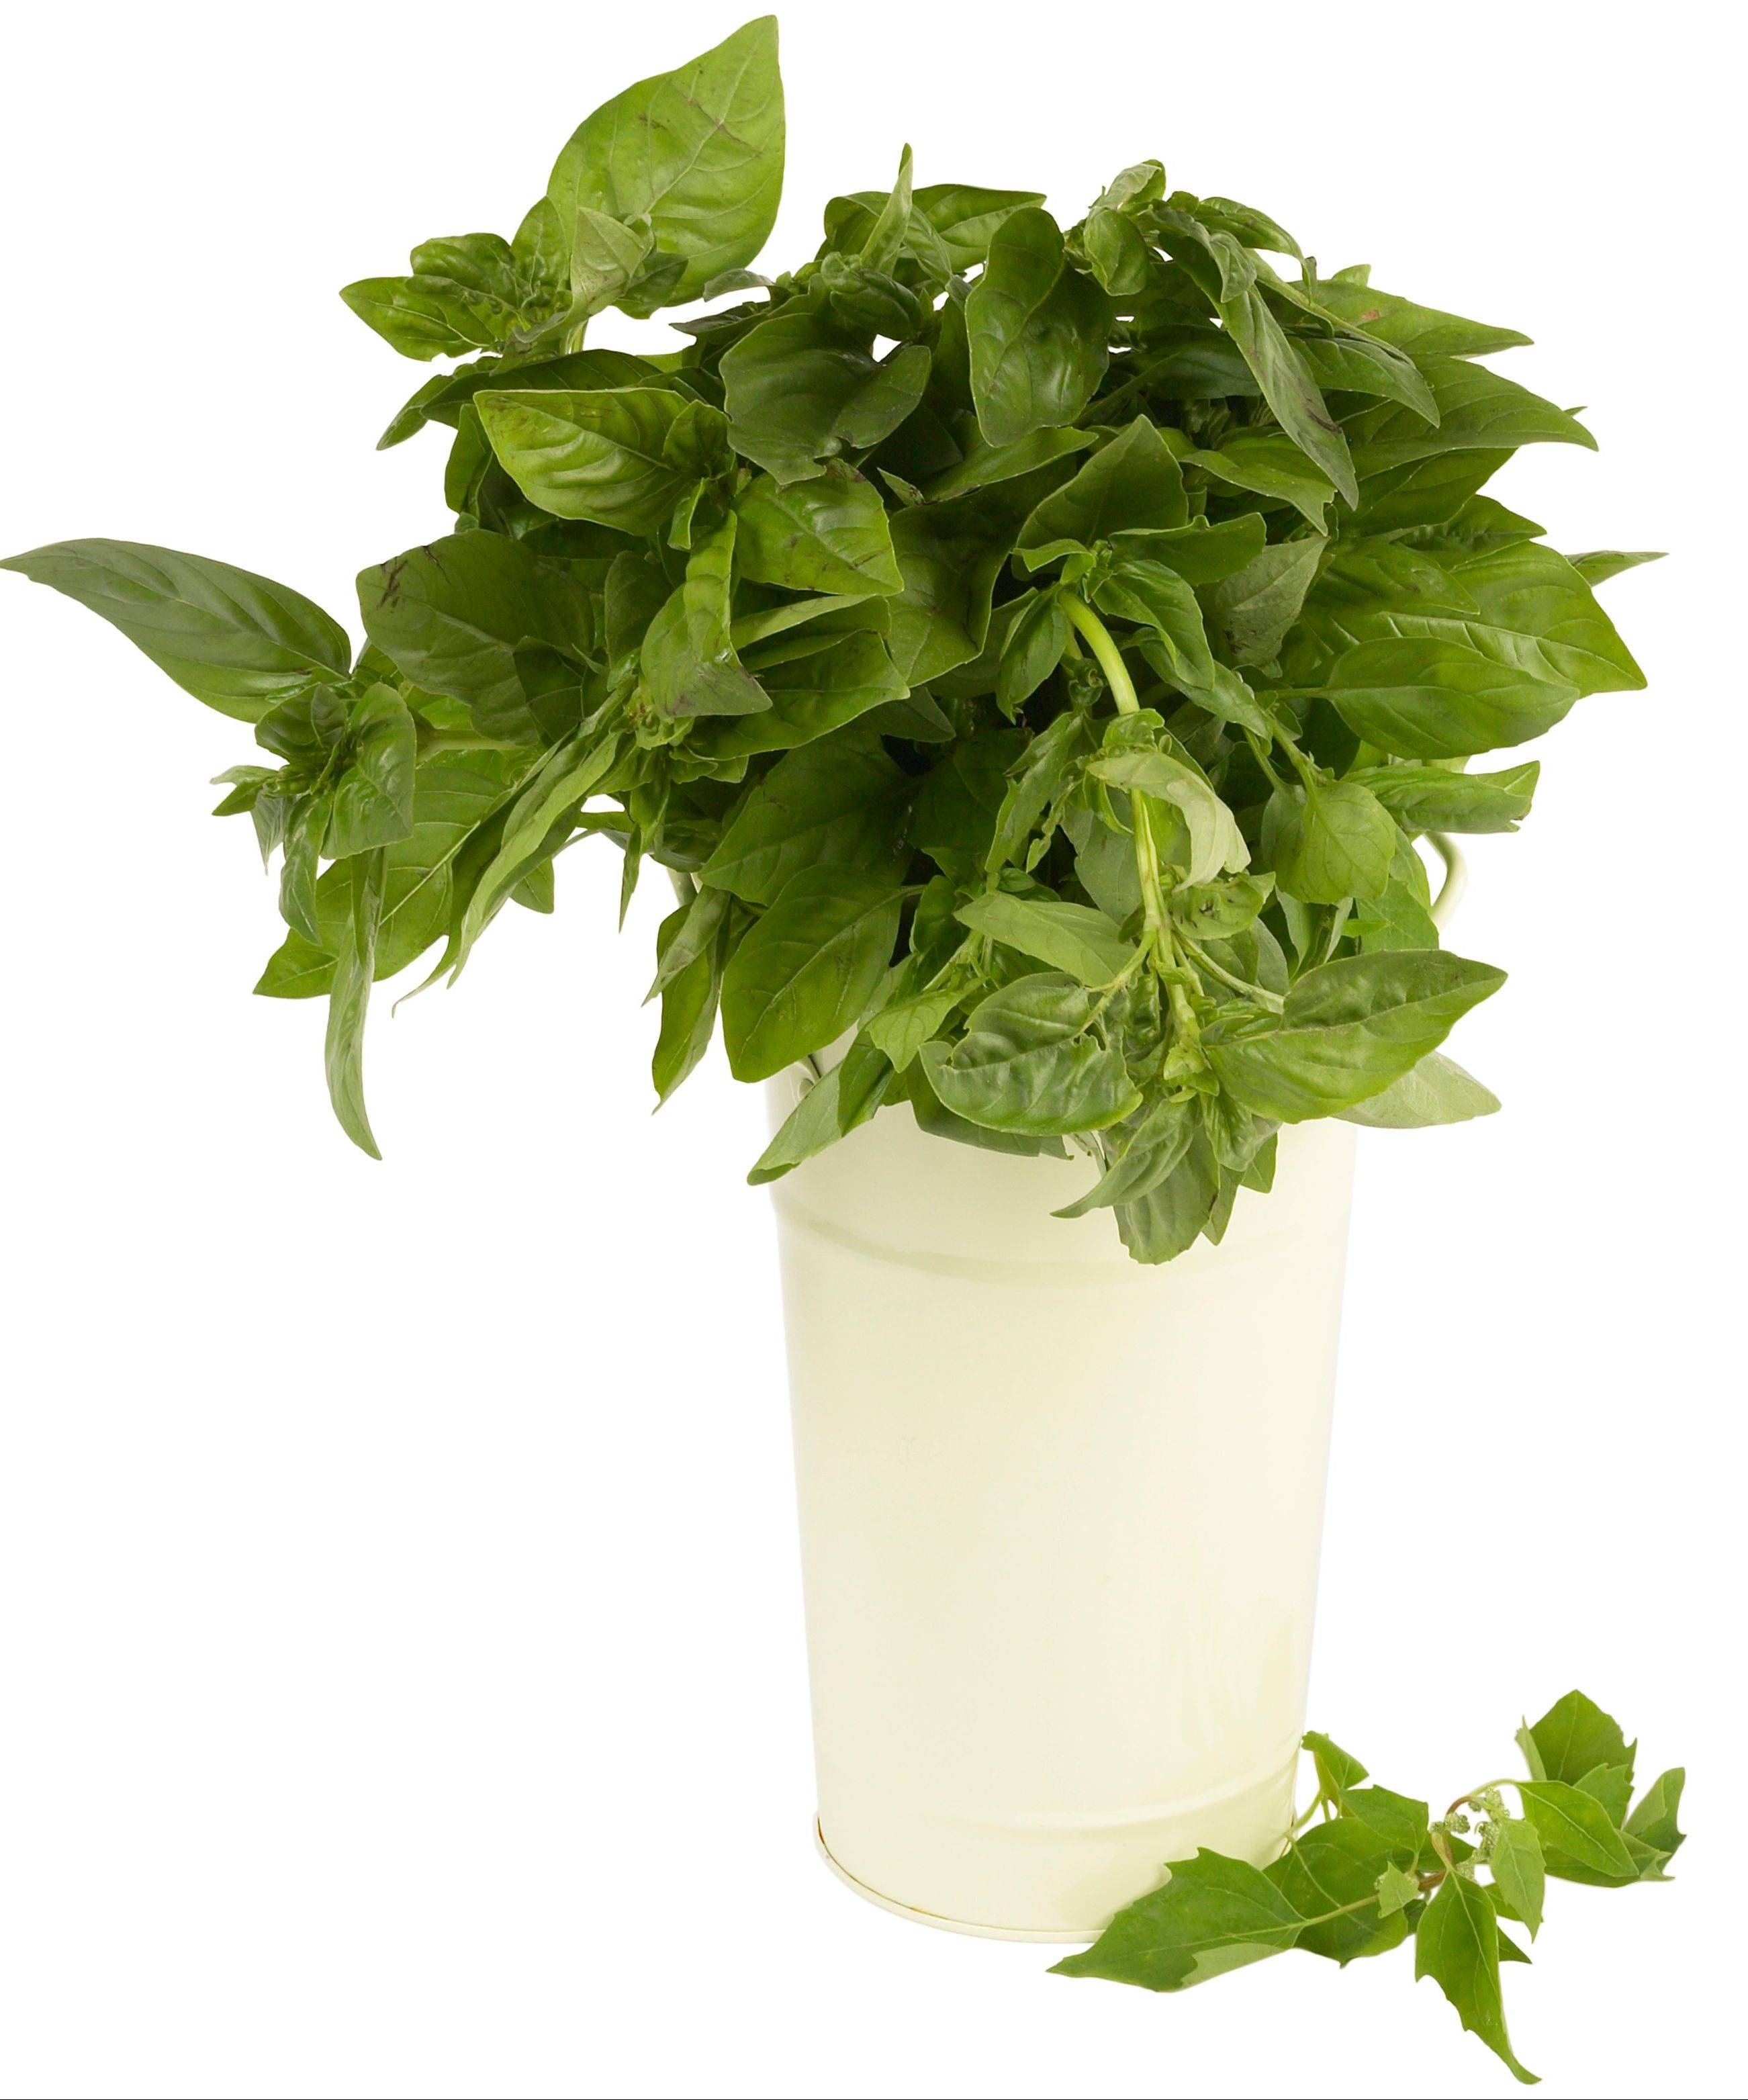 Fresh basil can be made into pesto, which is the ultimate summer condiment and can served with everything from pizza to sauces and soups. It also freezes well.